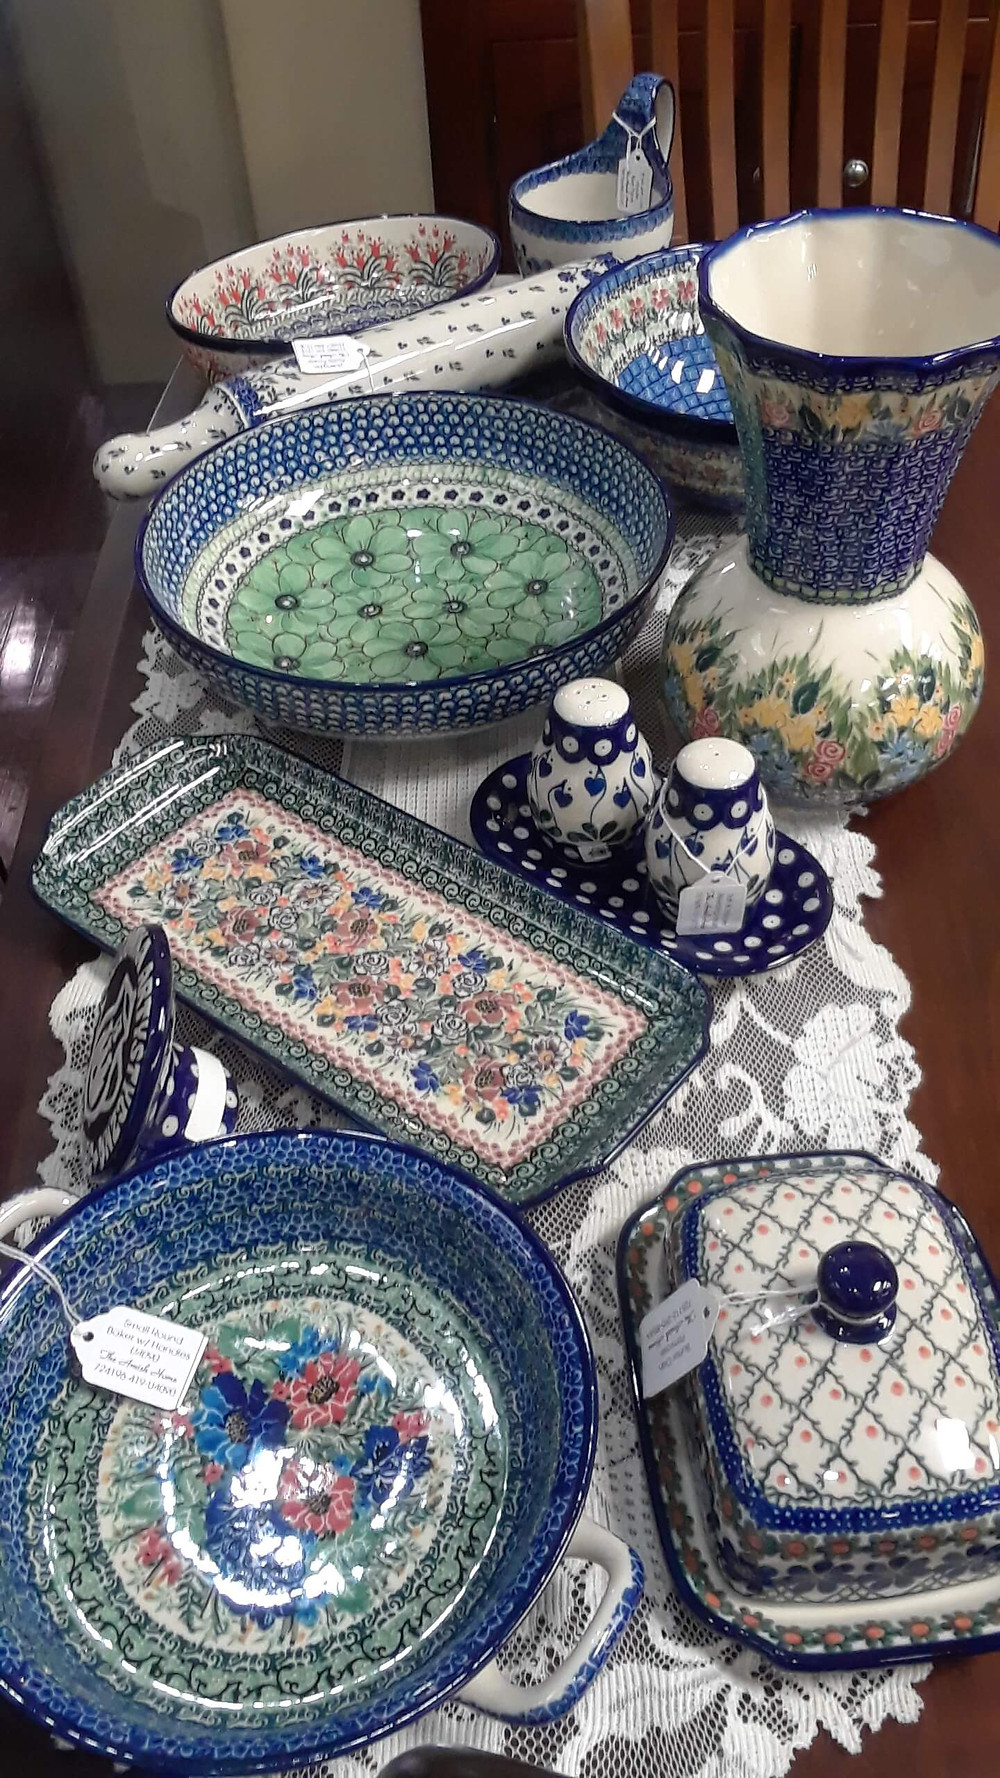 Handmade Polish Pottery at The Amish Home in the Pittsburgh MIlls